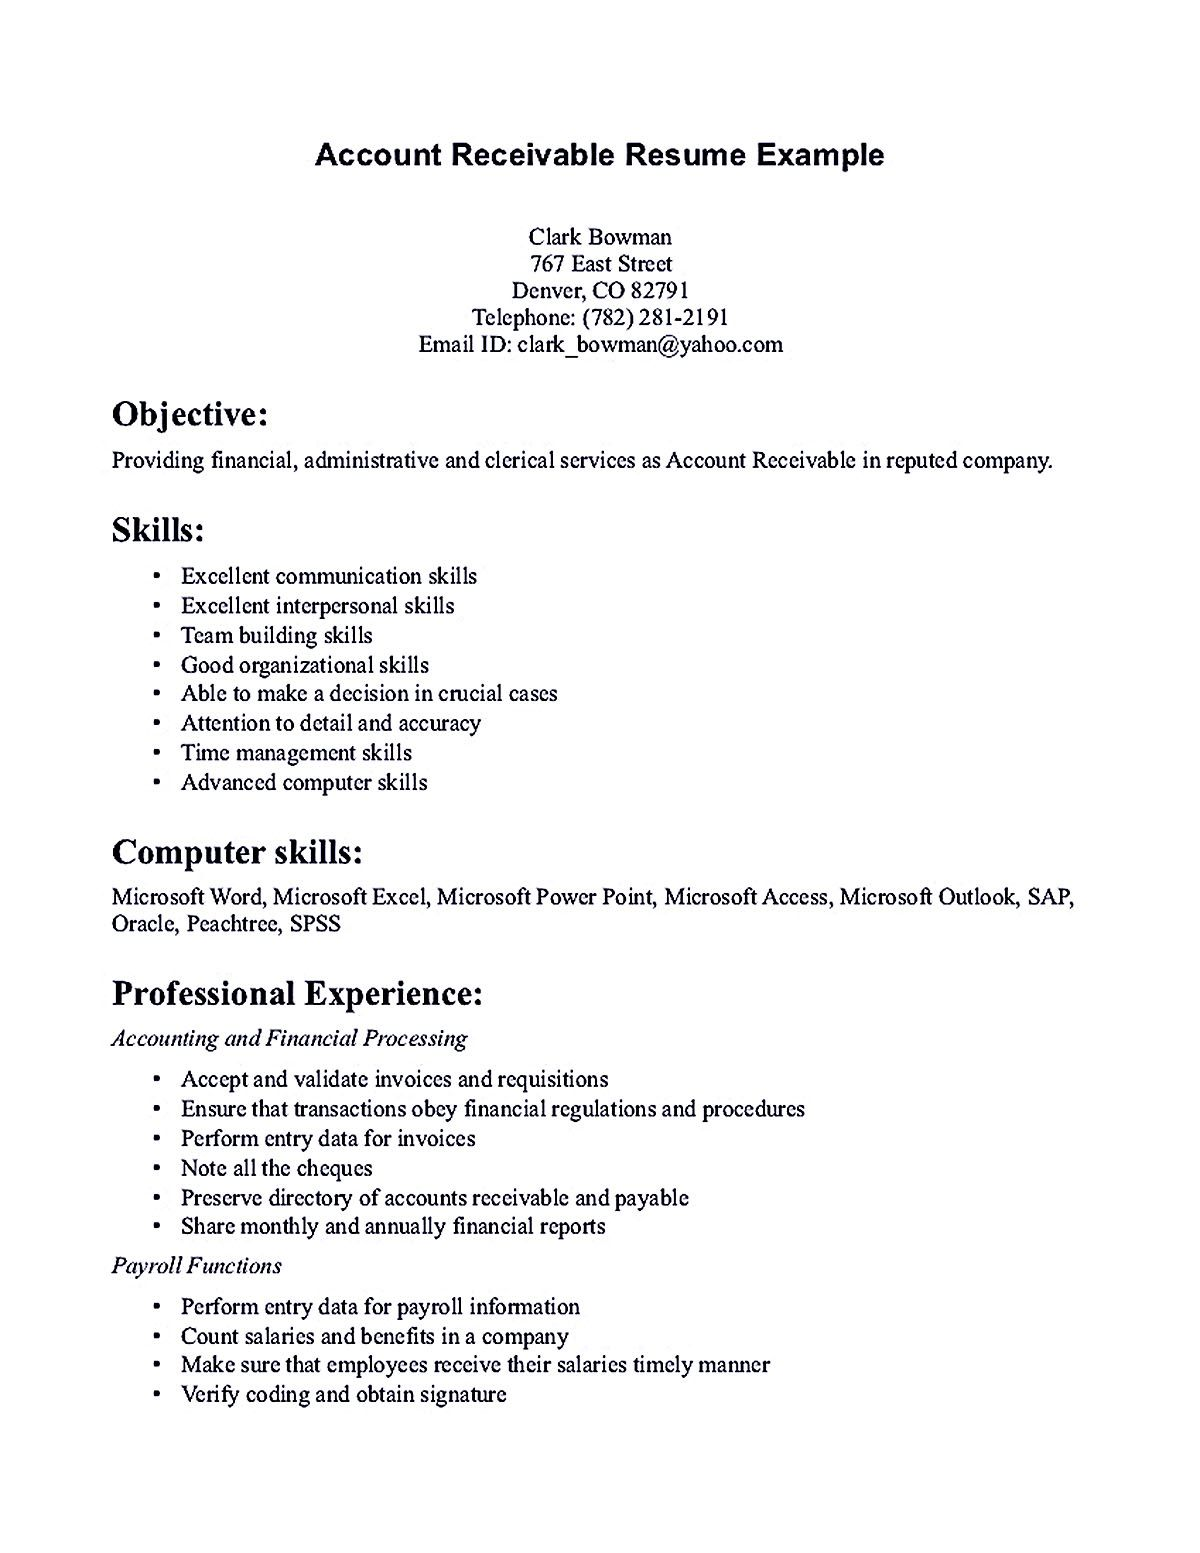 Account Receivable Resume Custom Account Receivable Resume Shows Both Technical And Interpersonal .